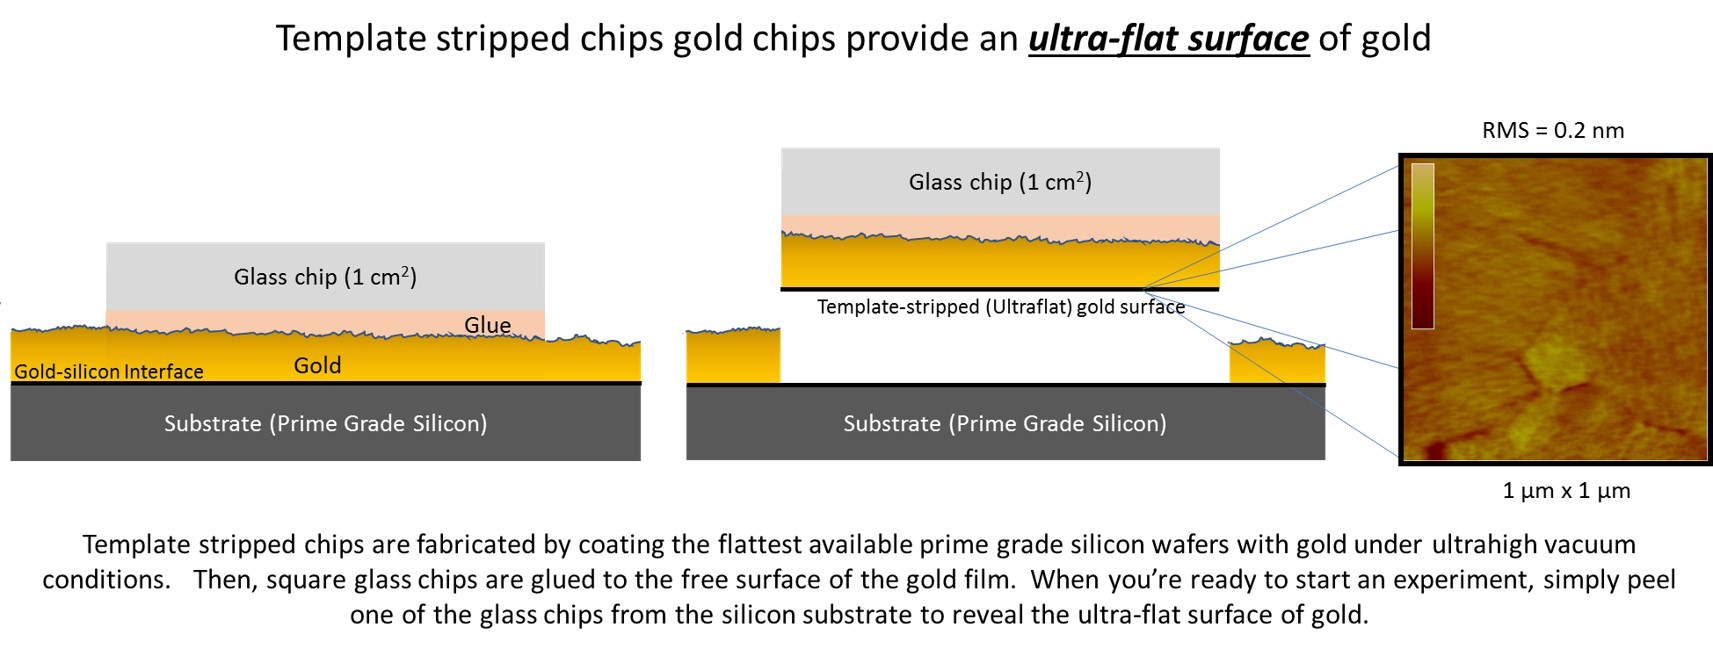 Ultra-Flat Gold Films: Platypus® Template Stripped Gold Chips ...